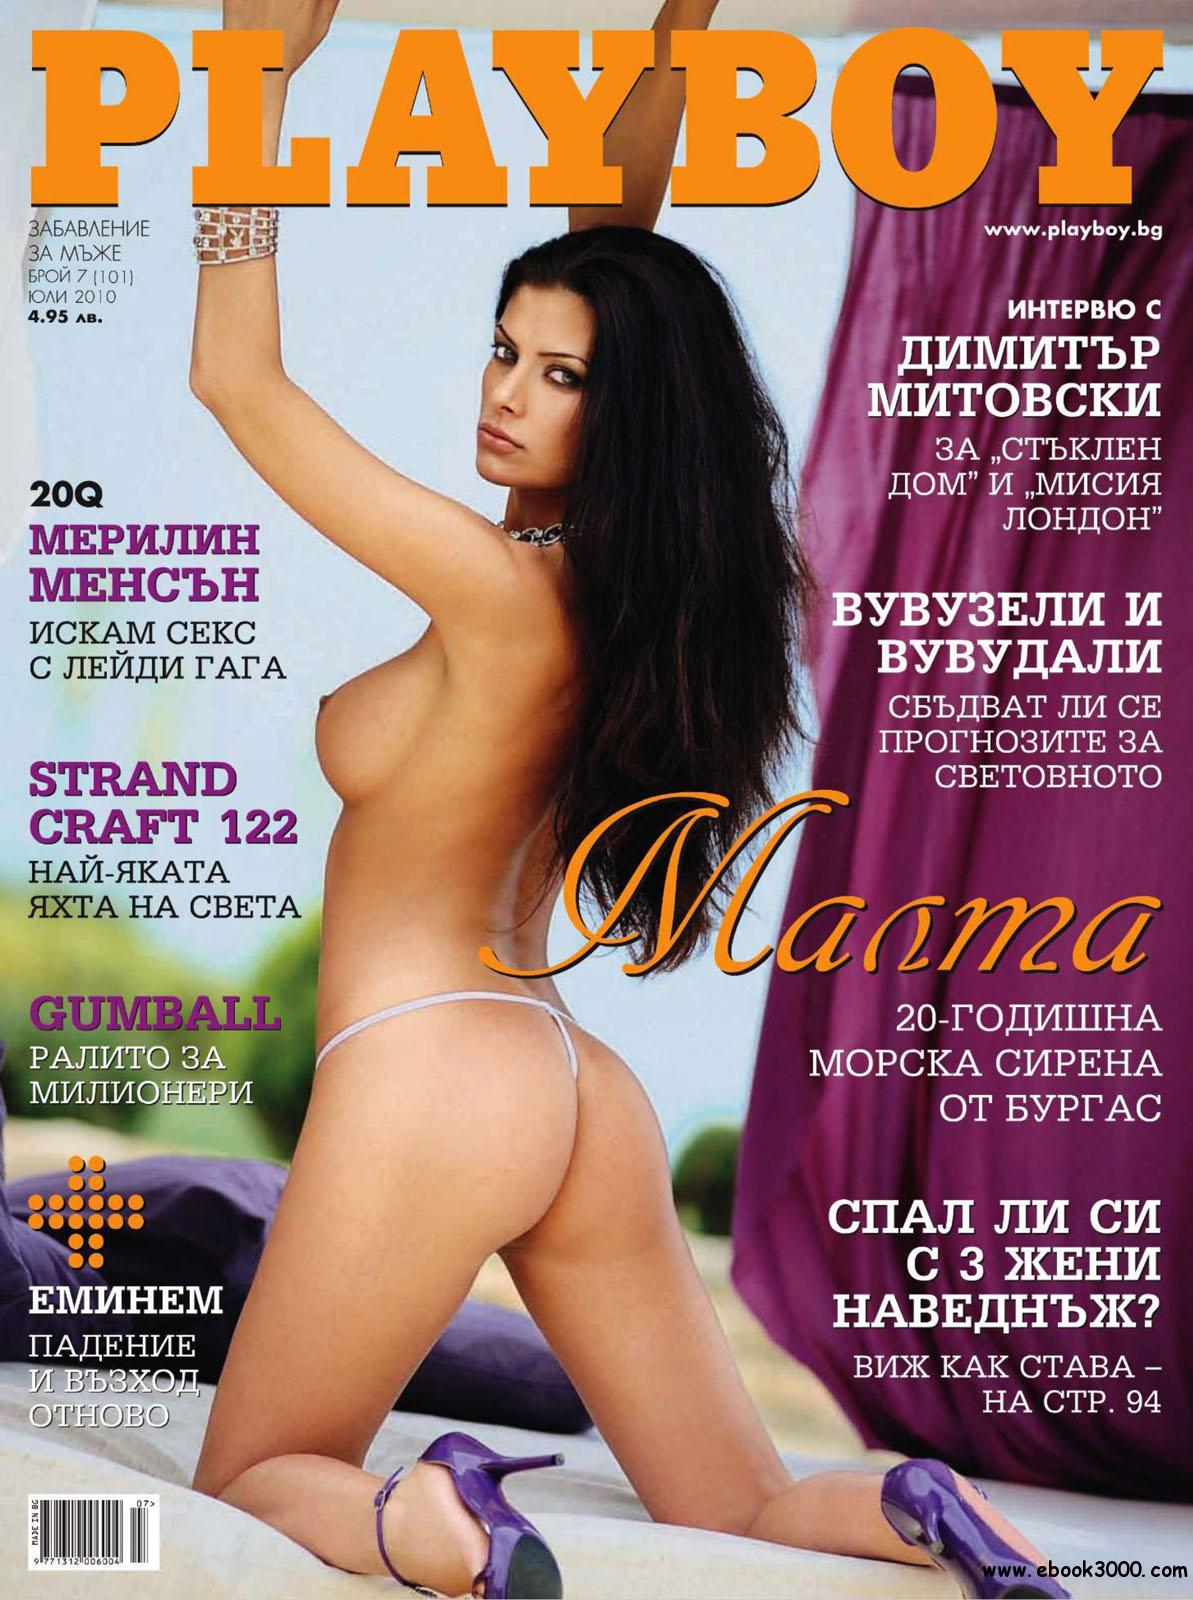 Playboy Bulgaria - July 2010 free download